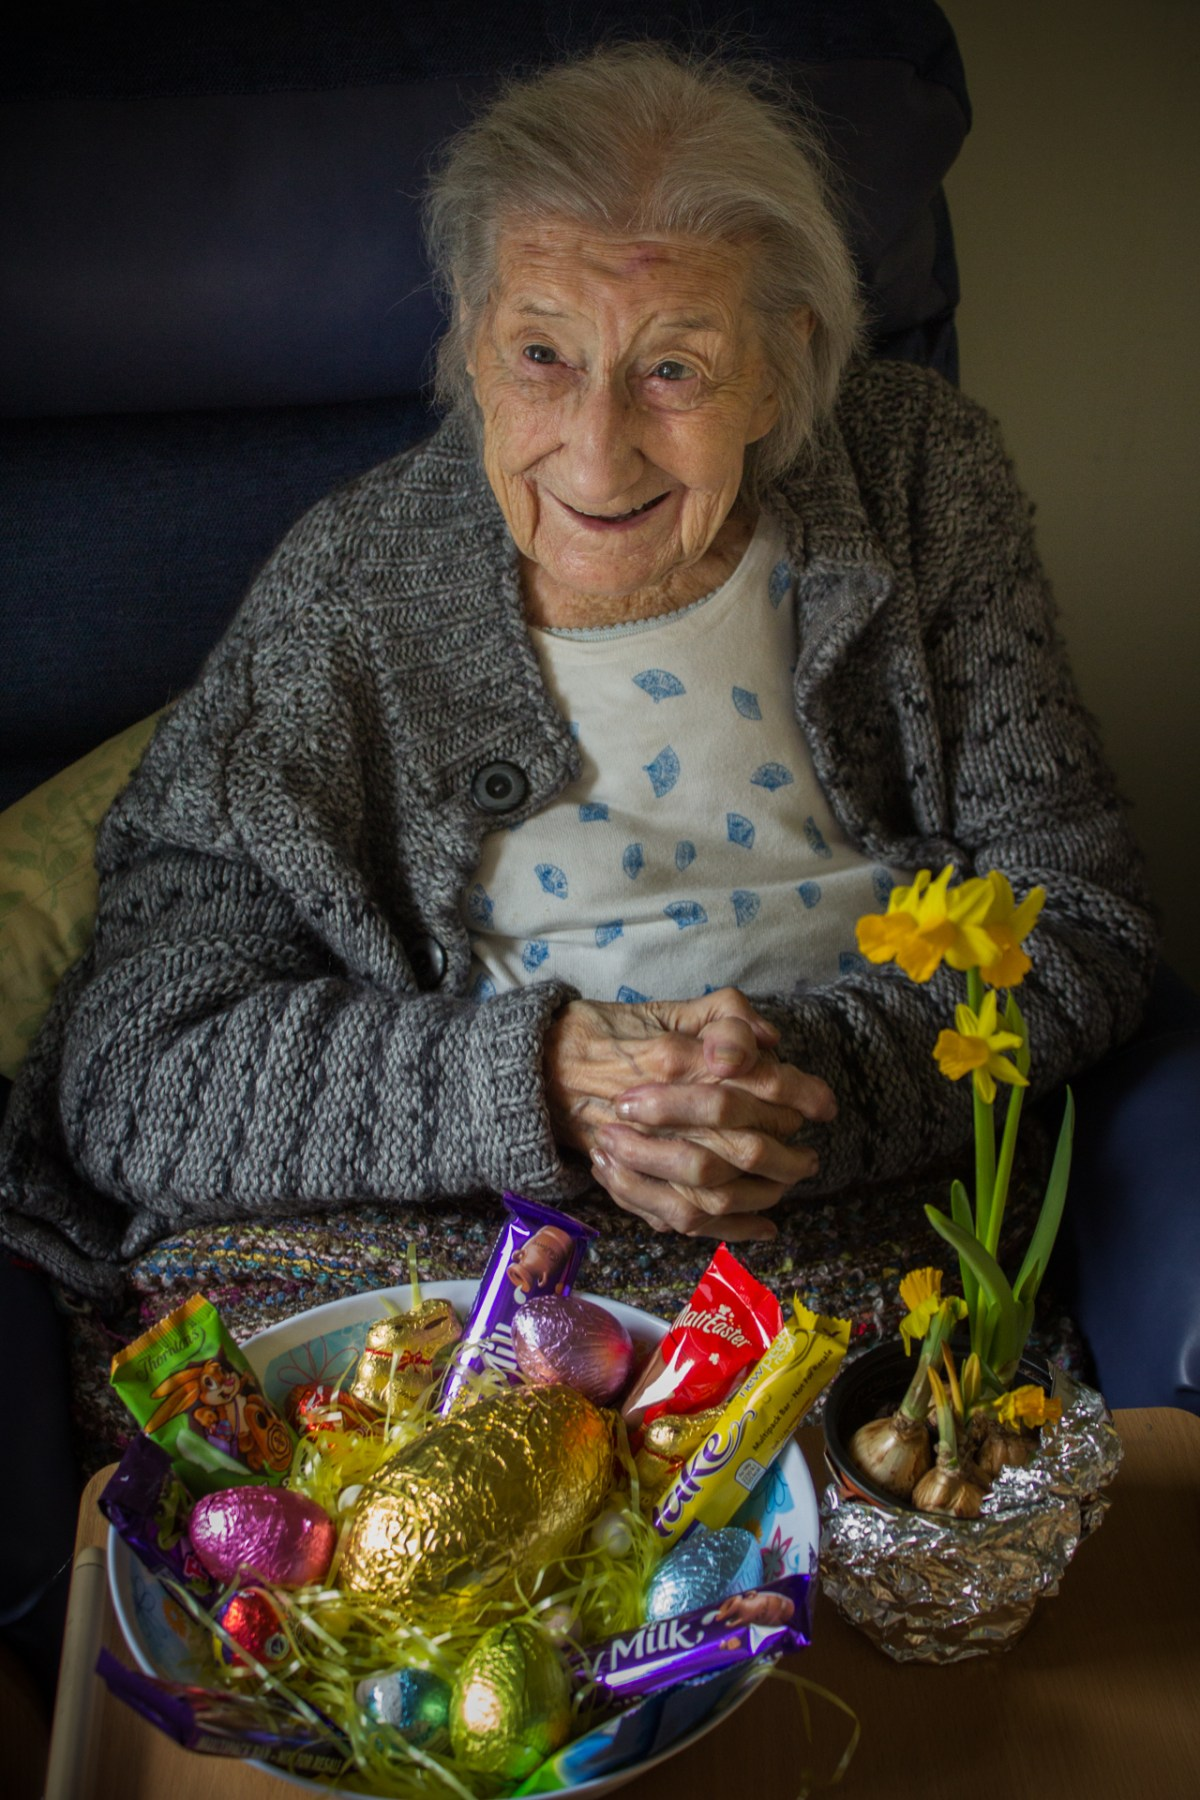 Dorothy seemed thrilled with the chocolate goodies we brought her.